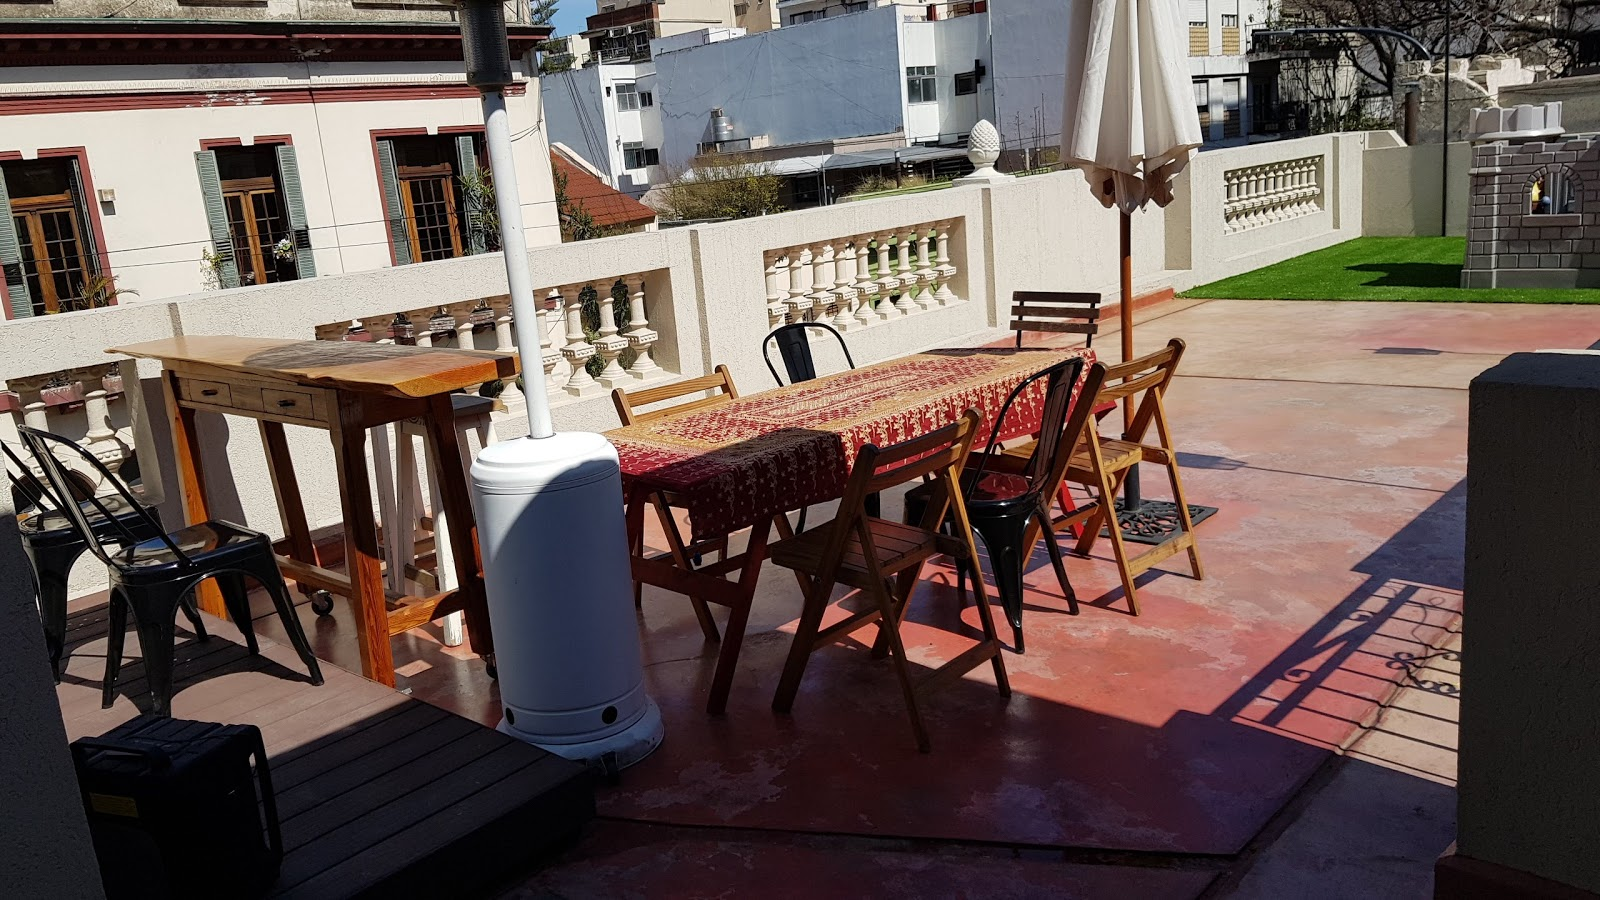 Roof terrace with table